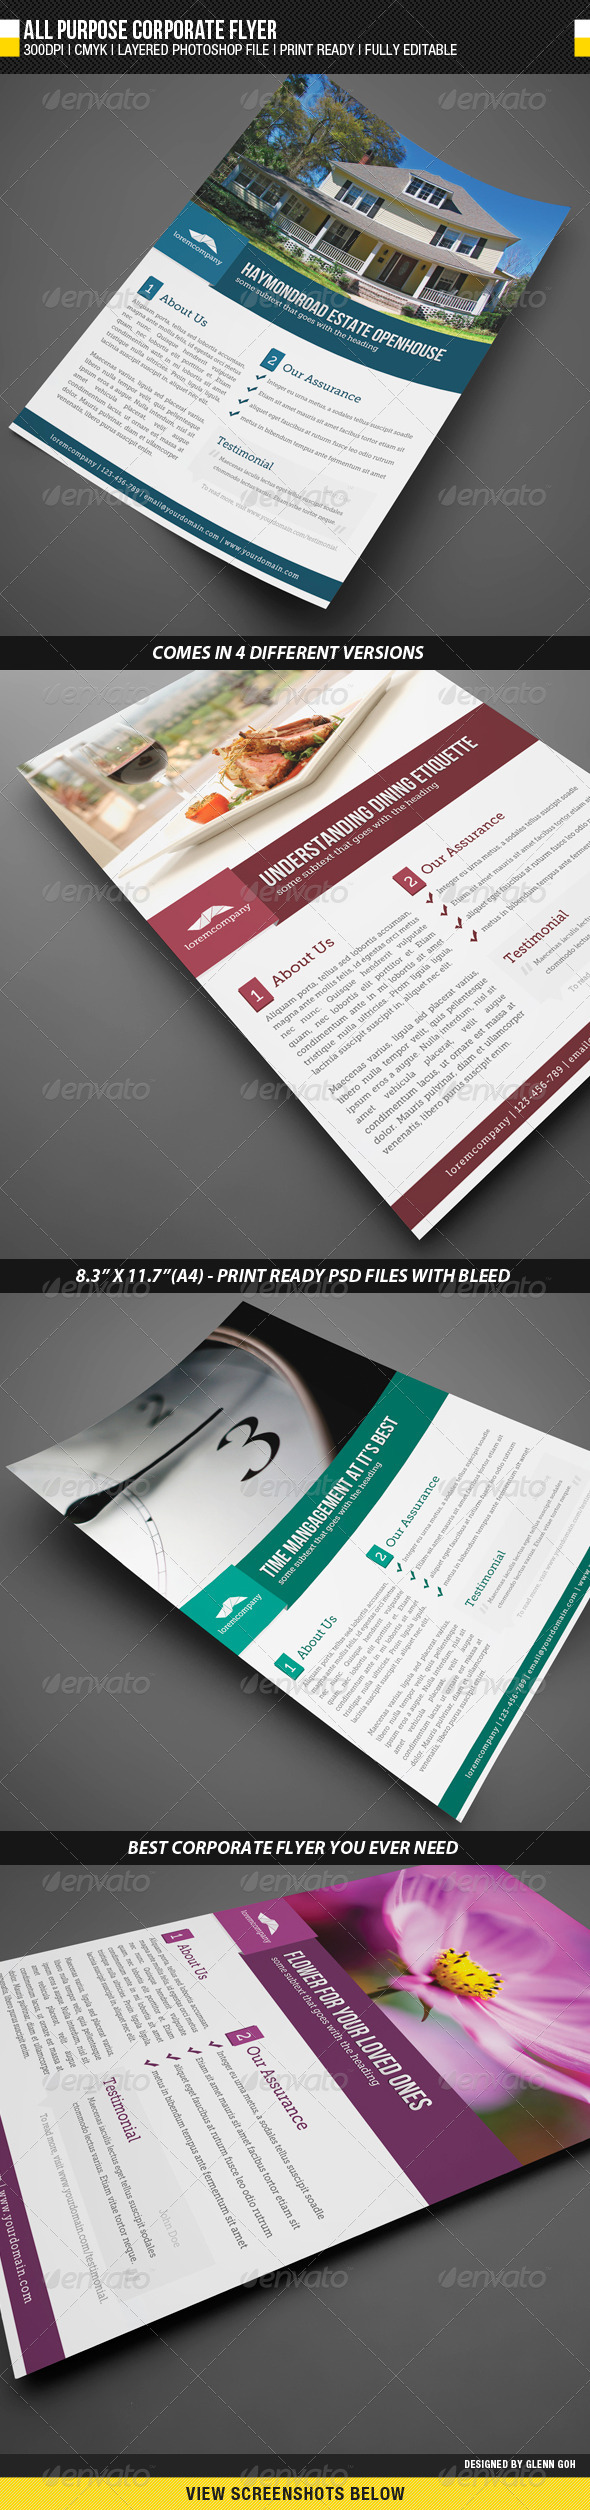 All Purpose Corporate Flyer - Corporate Flyers